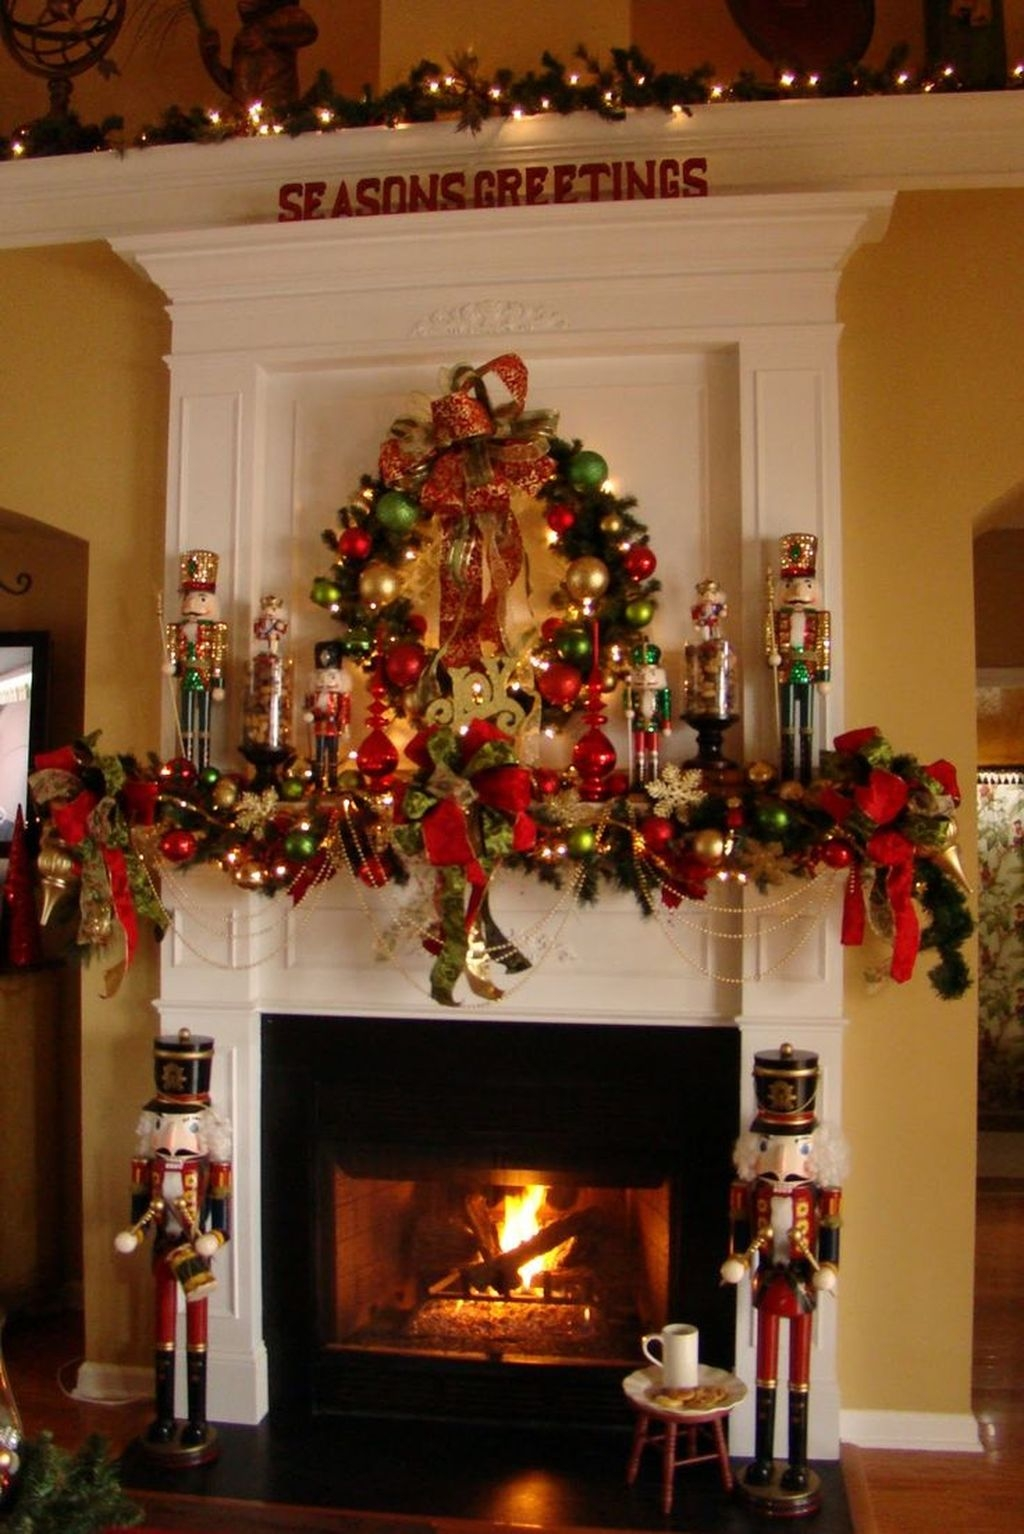 Cozy Fireplace Christmas Decoration Ideas To Makes Your Room Keep Warm30